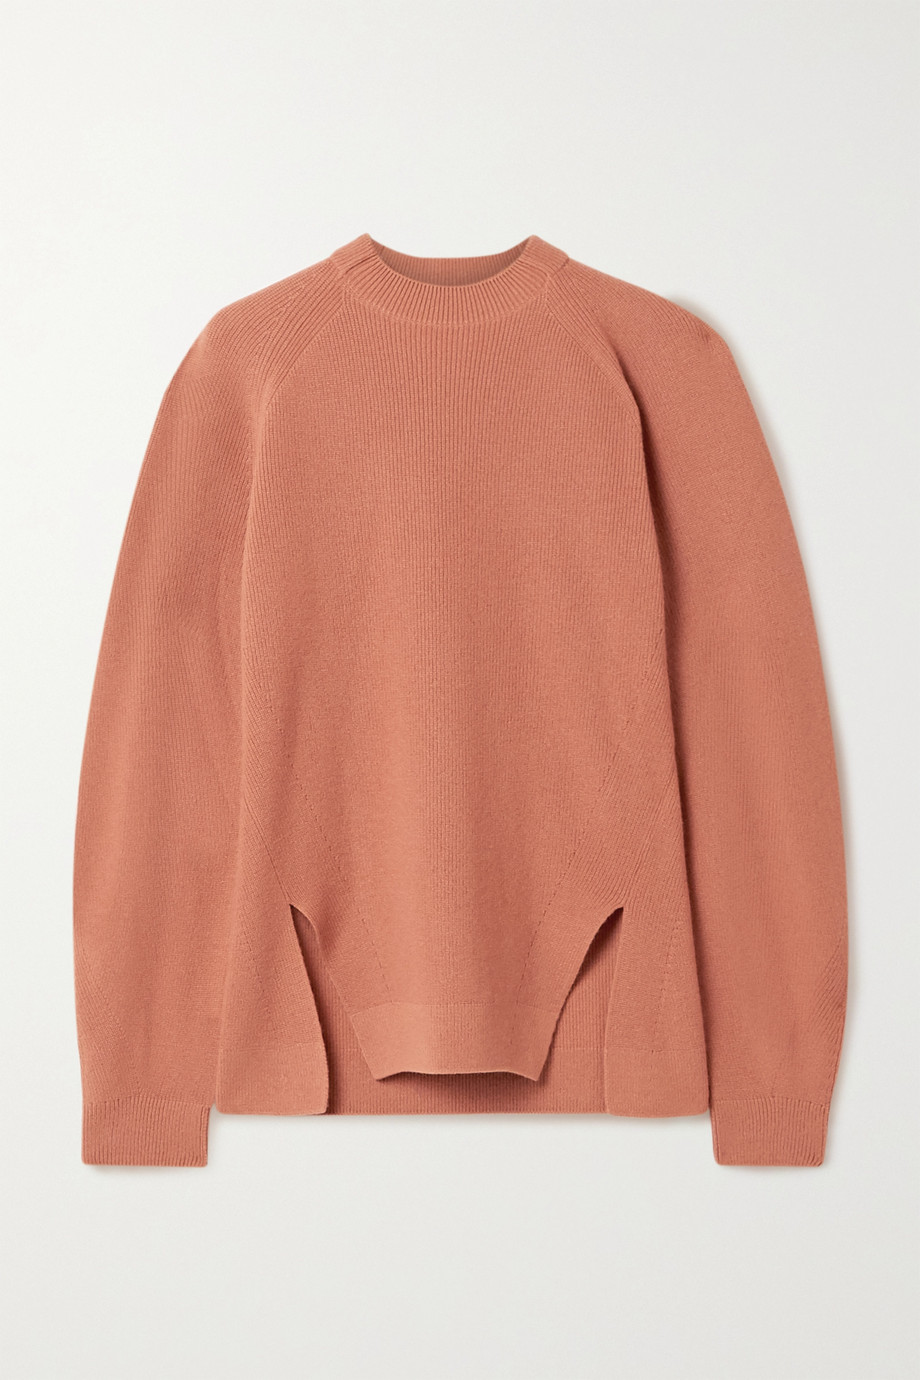 Loro Piana Girocollo Brixton ribbed cashmere sweater